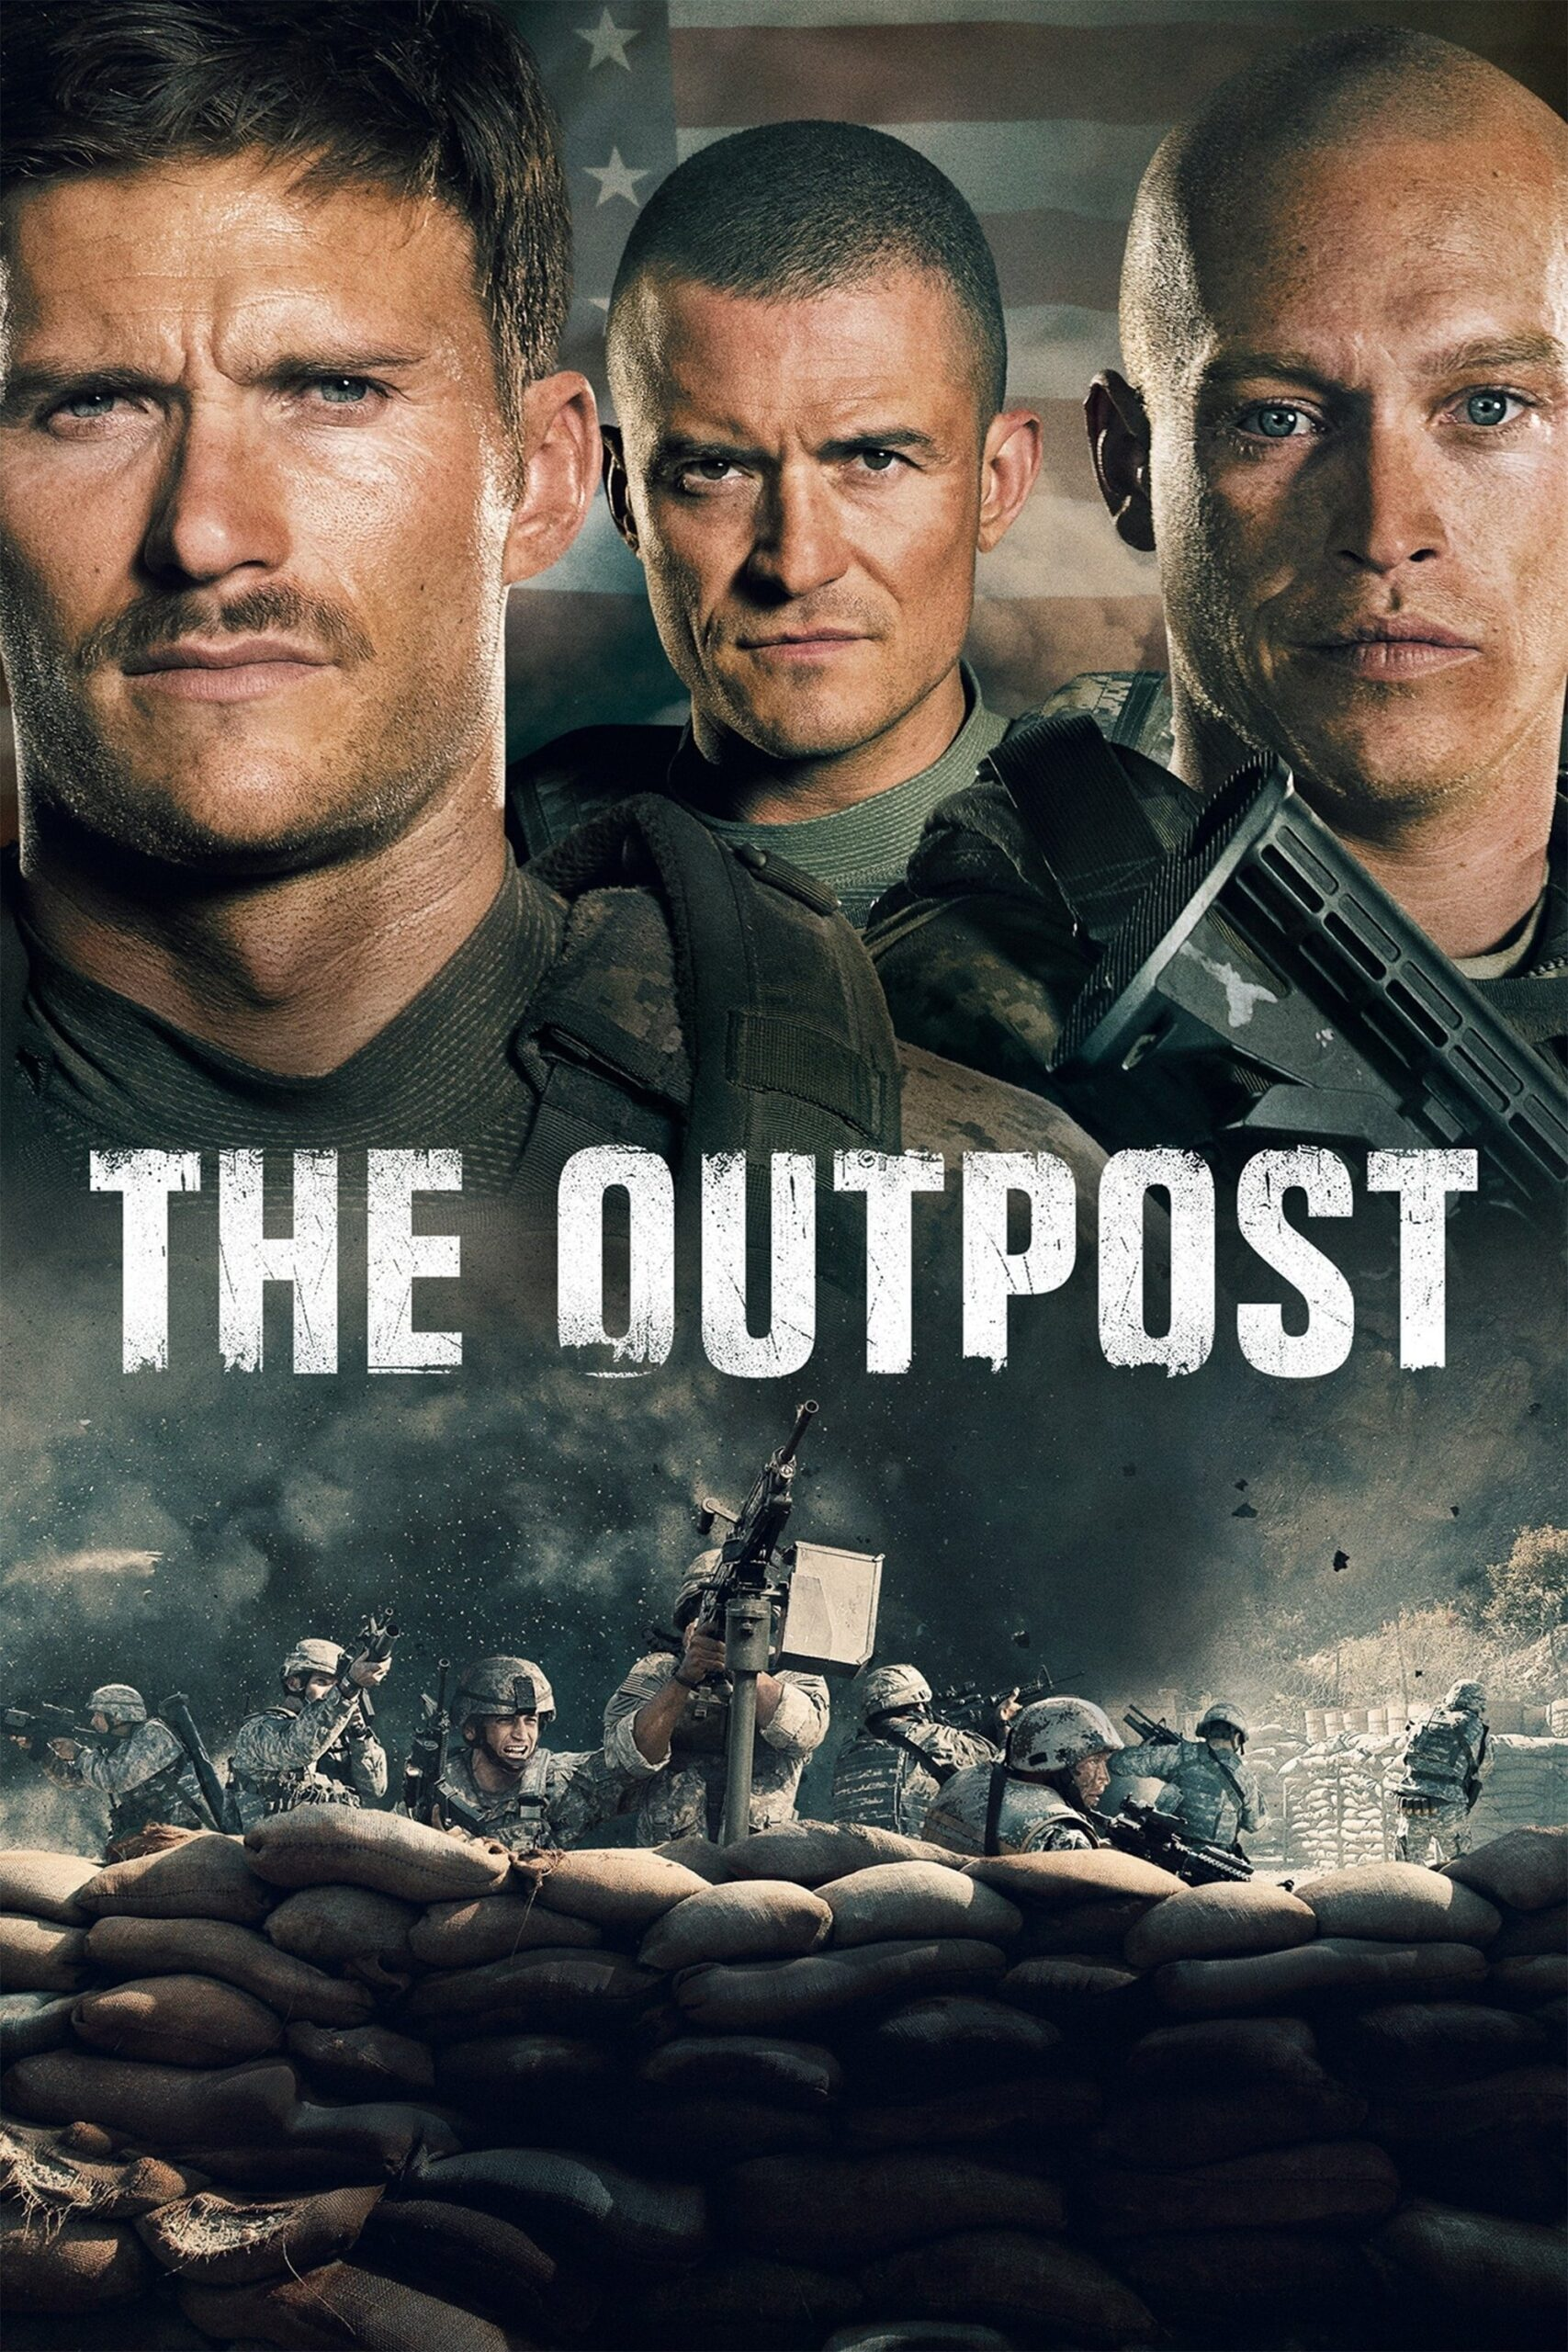 The Outpost movie review